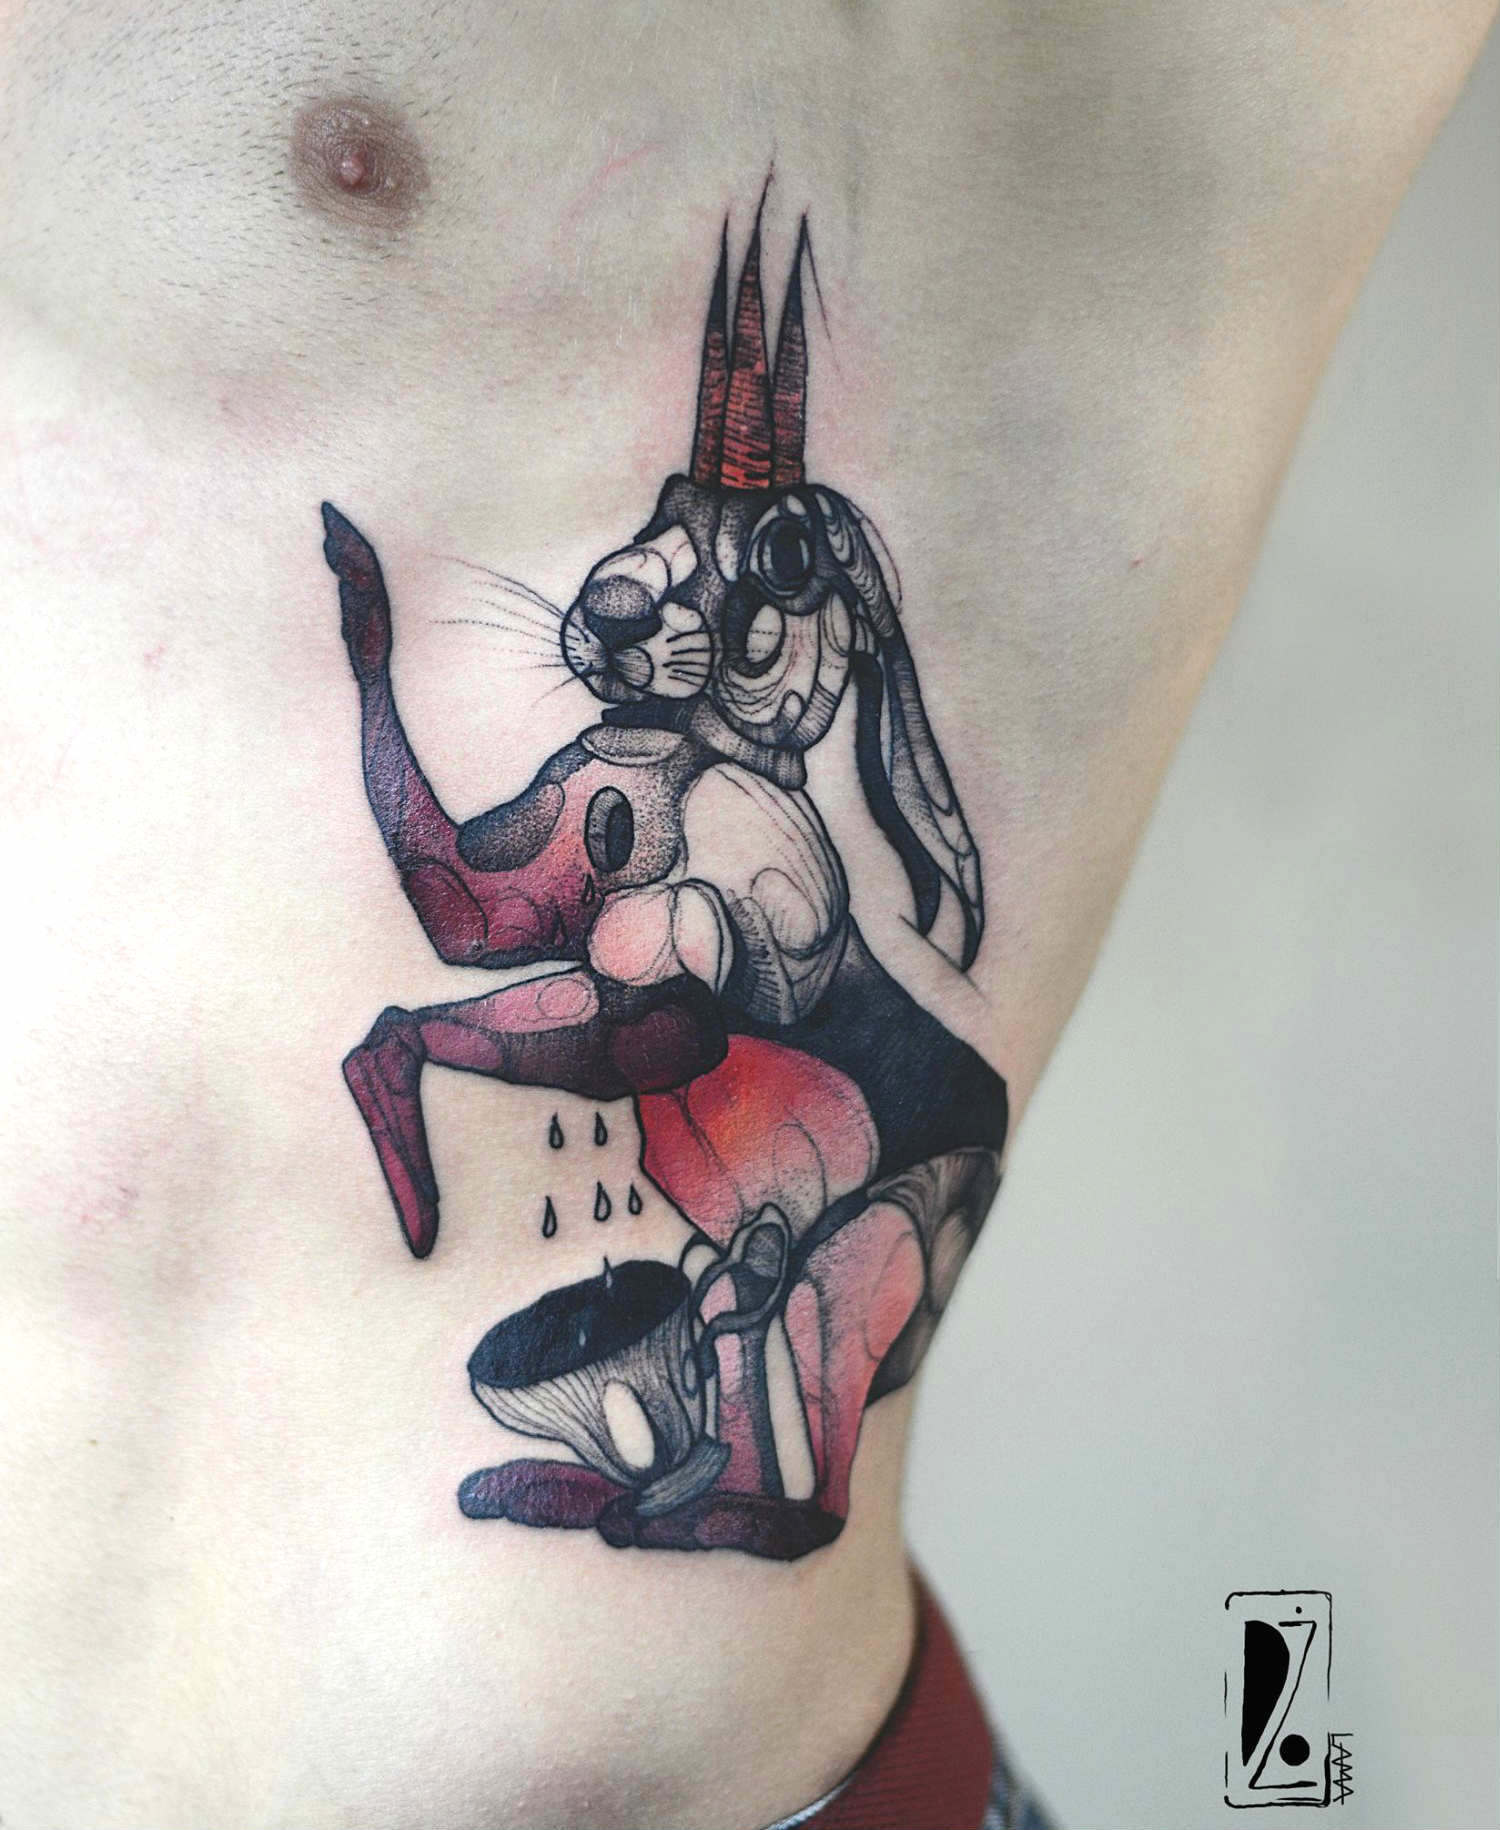 Joanna Swirska dzolama tattoo artist white rabbit tattoo